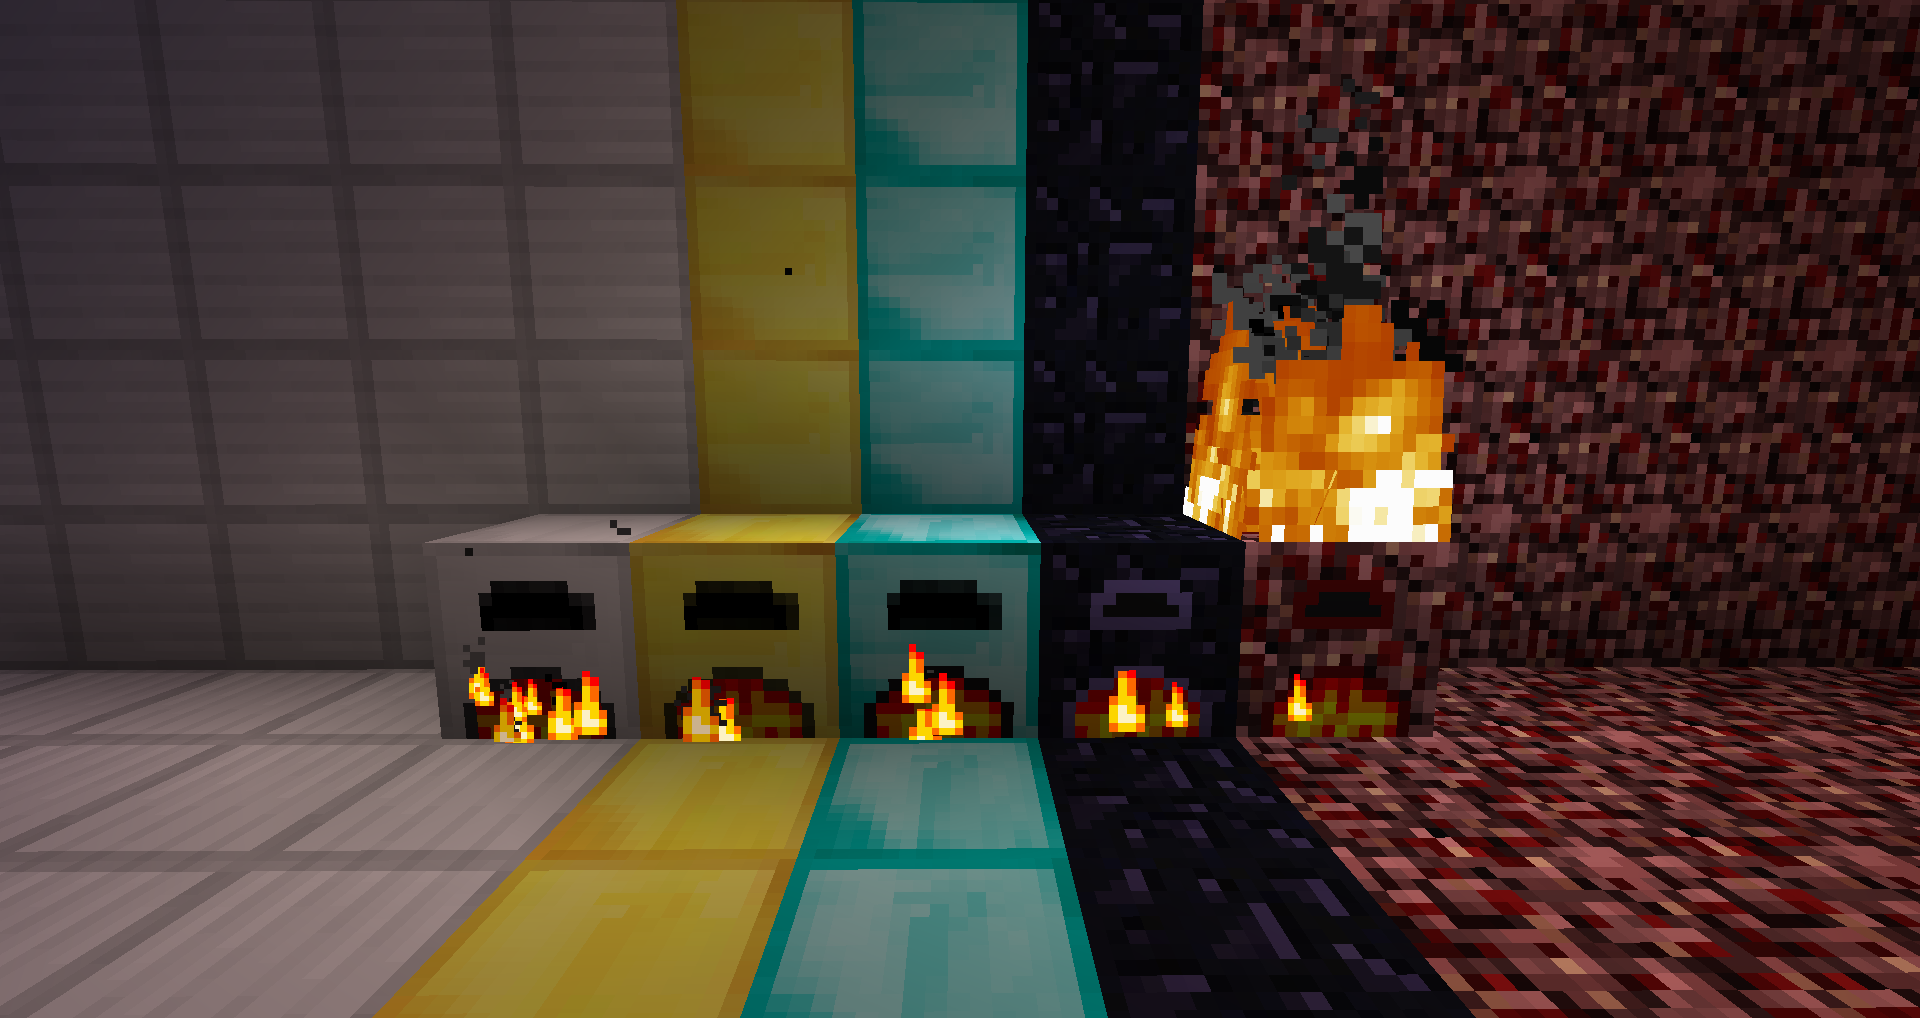 Download More Furnaces Mod 1 13 1 12 2 1 11 2 Adds 5 Furnaces With Different Abilities To The Game Minecraft Mods Minecraft Minecraft Modpacks